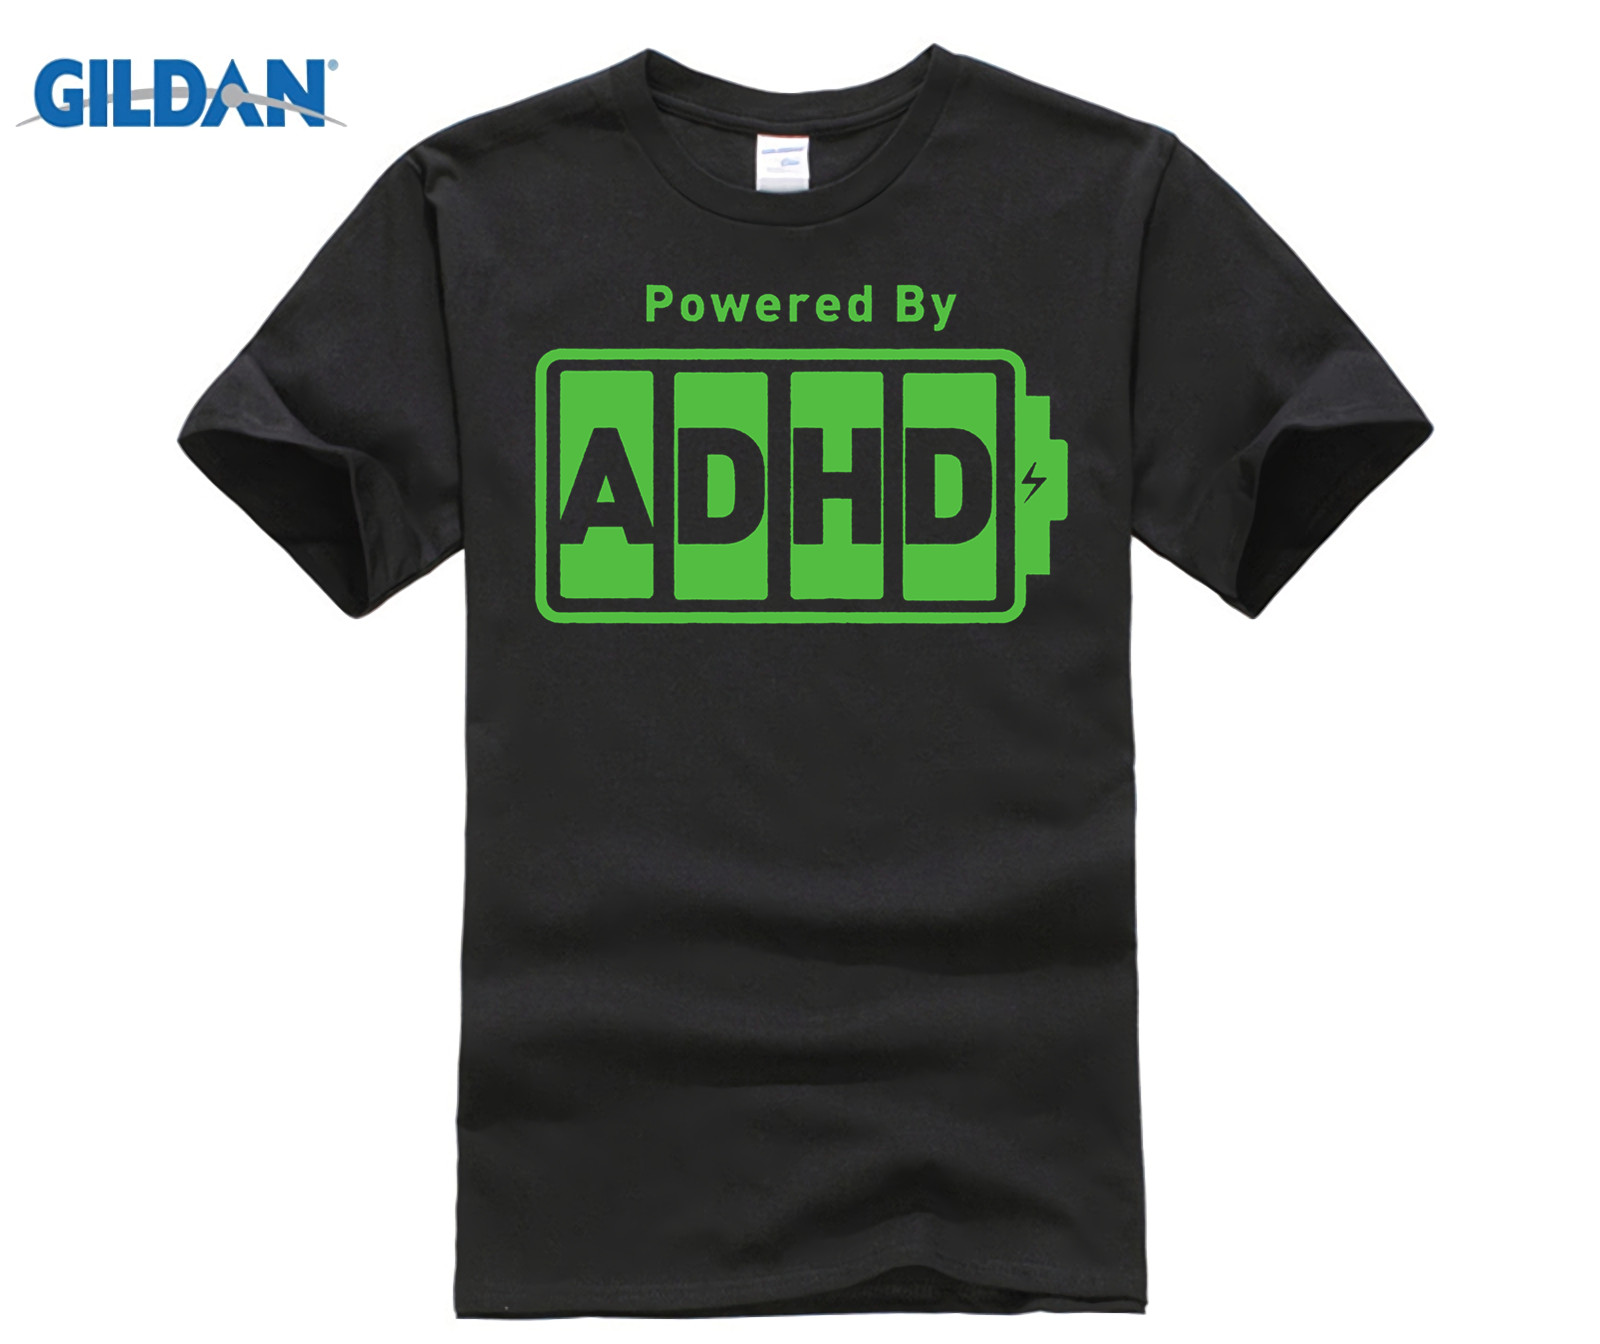 162303cb Battery Powered ADHD T Shirt Funny Energy ADD Deficit Tee Top Tee for Sale  Natural Cotton